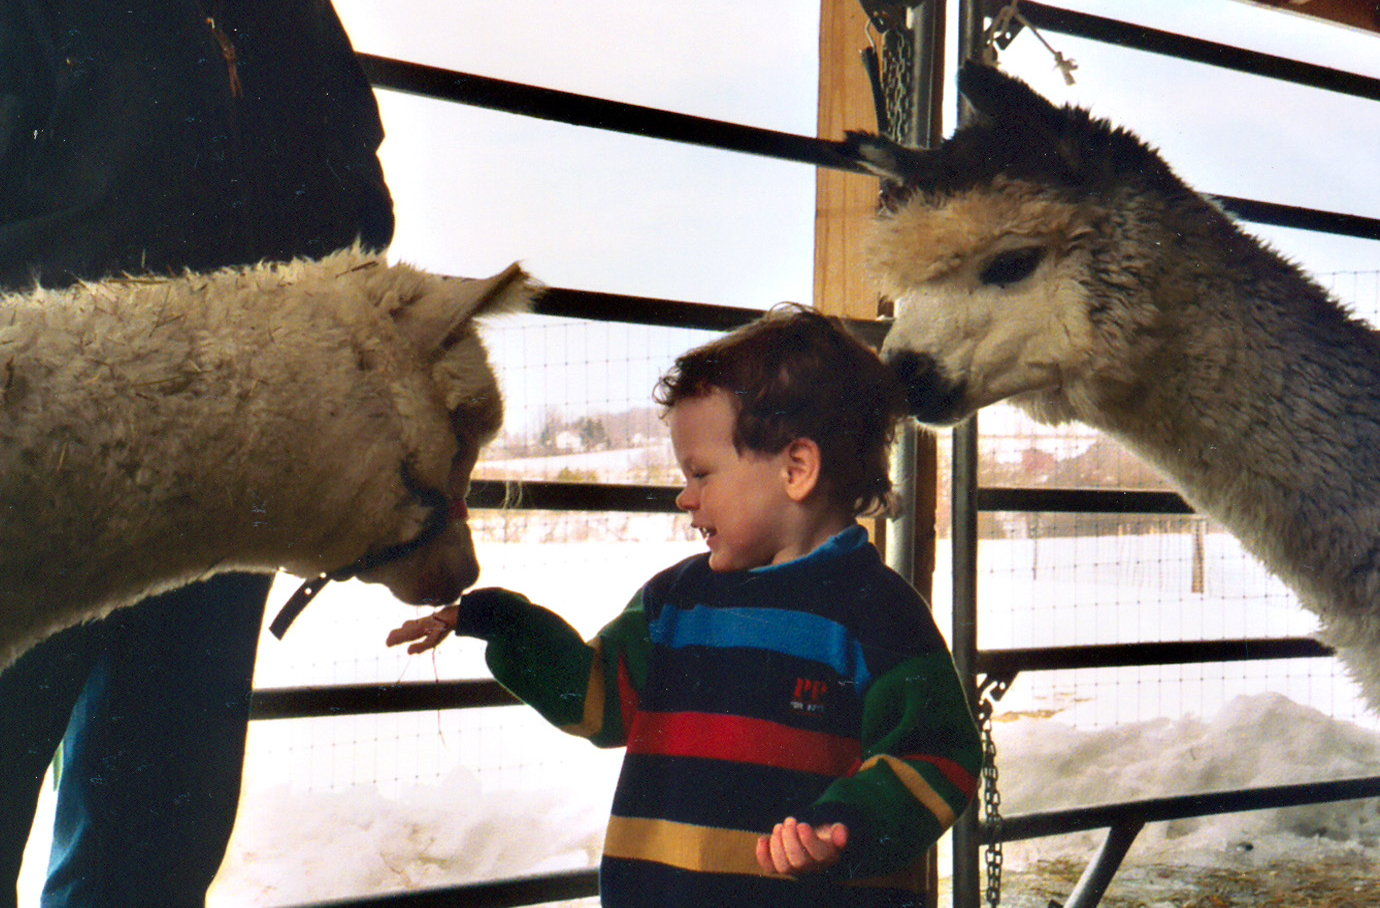 Child petting 2 alpacas